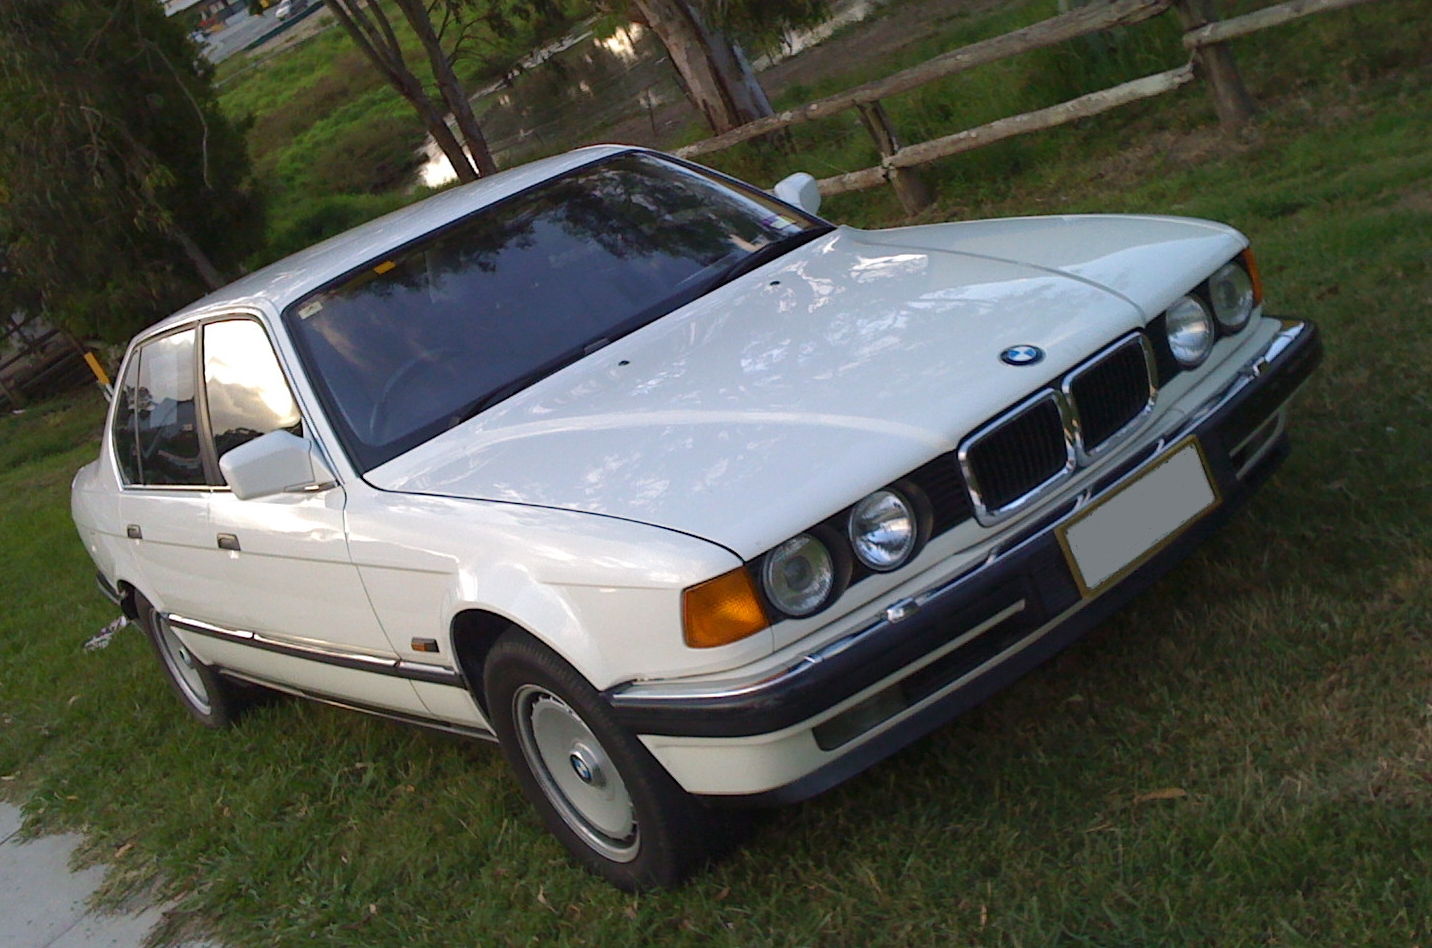 The year was 1988 and the BMW 750iL was an astonishing car – twin